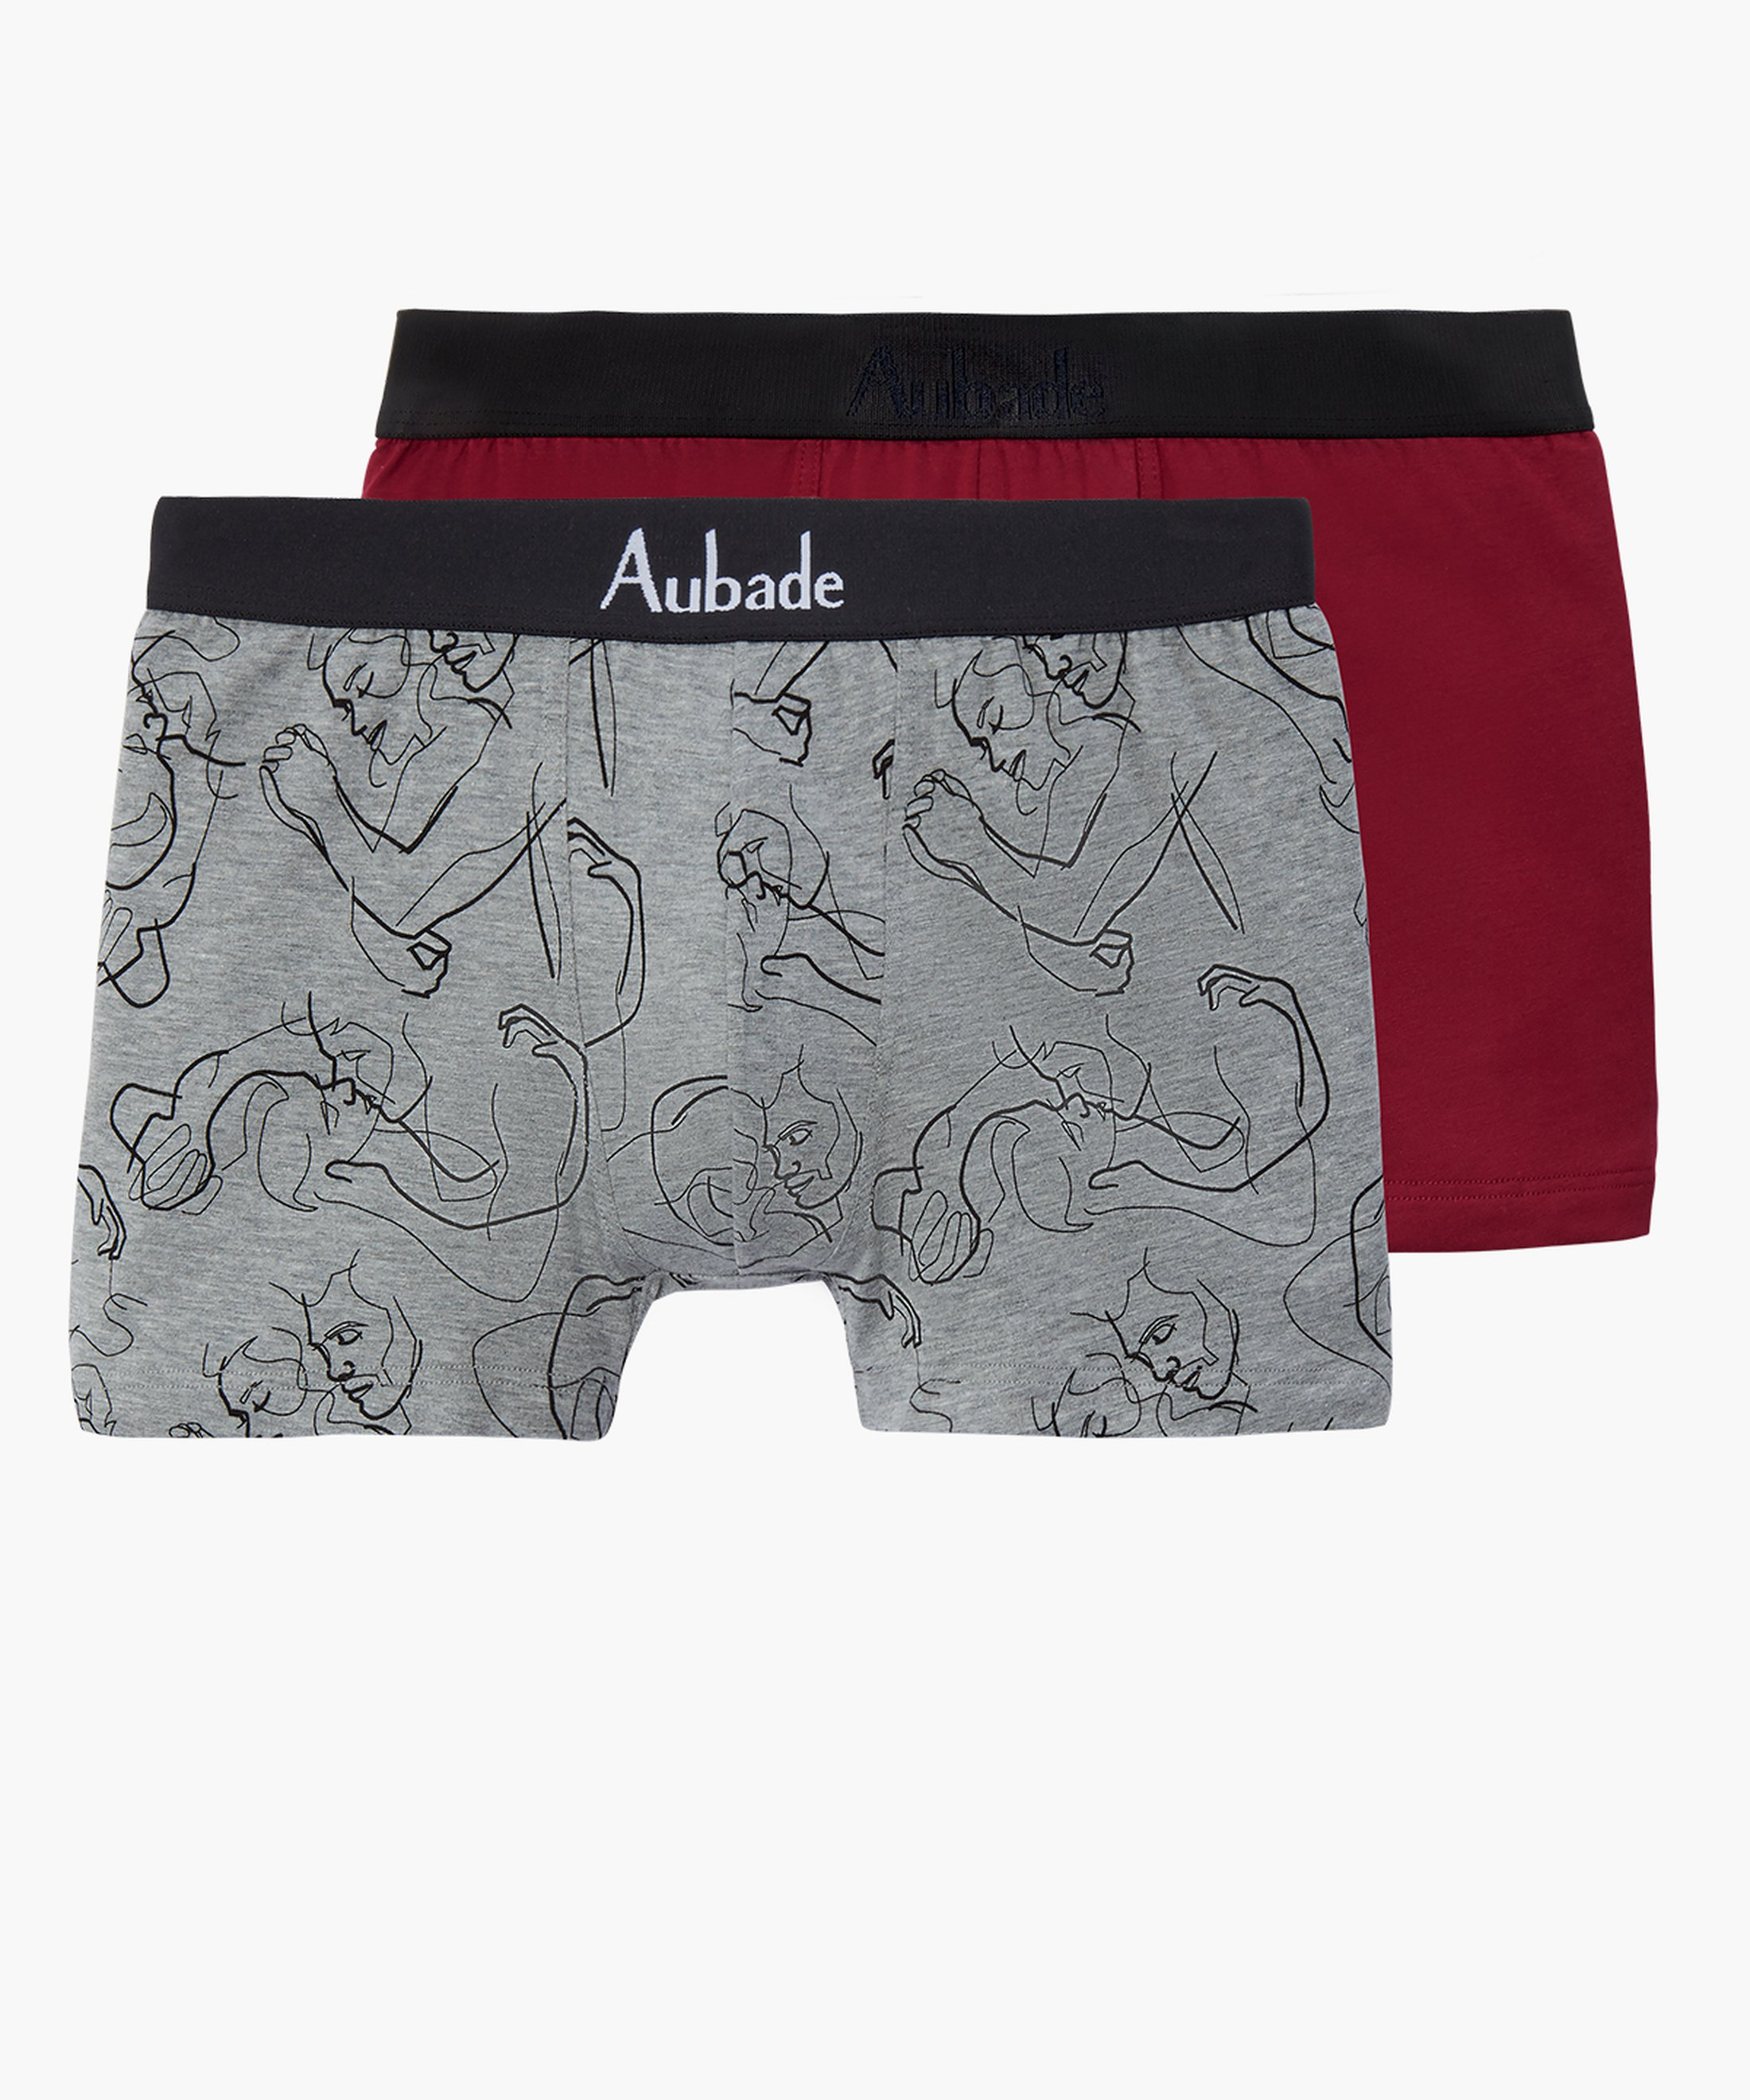 AUBADE HOMME Pack zwei Herrenboxer Rot Love und Rot Bordeaux | Aubade